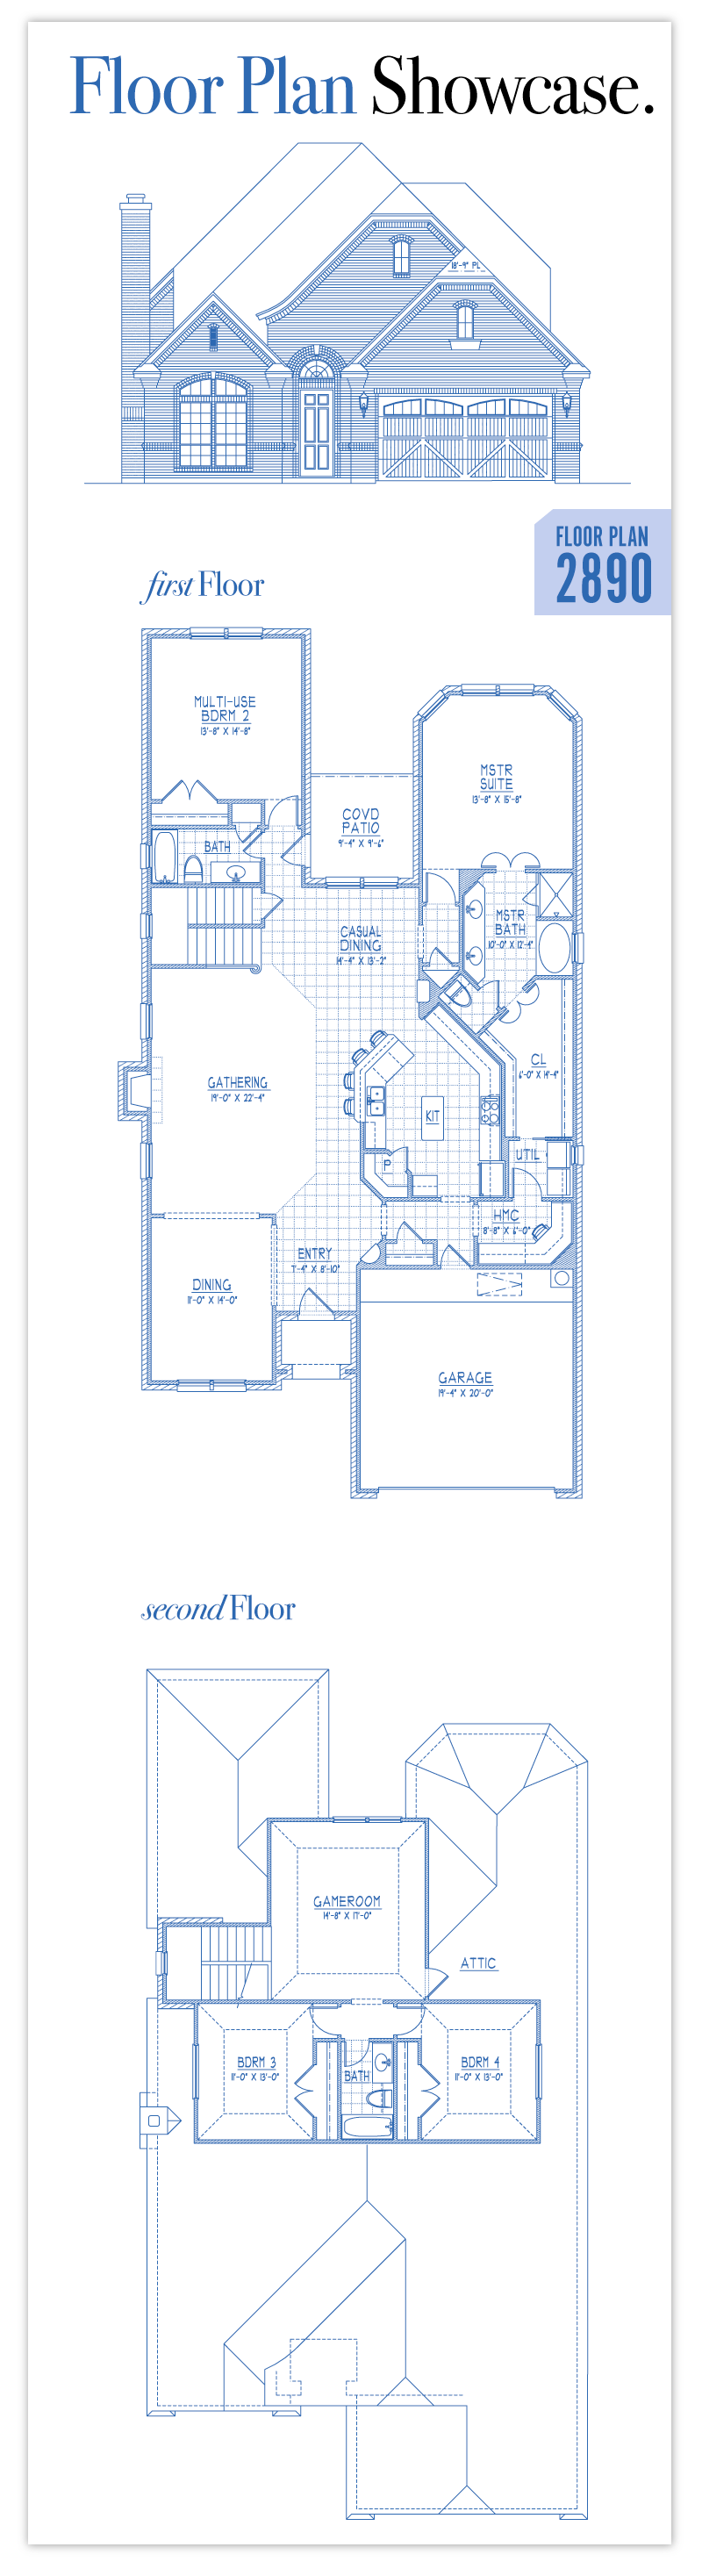 Floor plan 2890 trinity custom homes new homes in fort for Custom floor plans for new homes